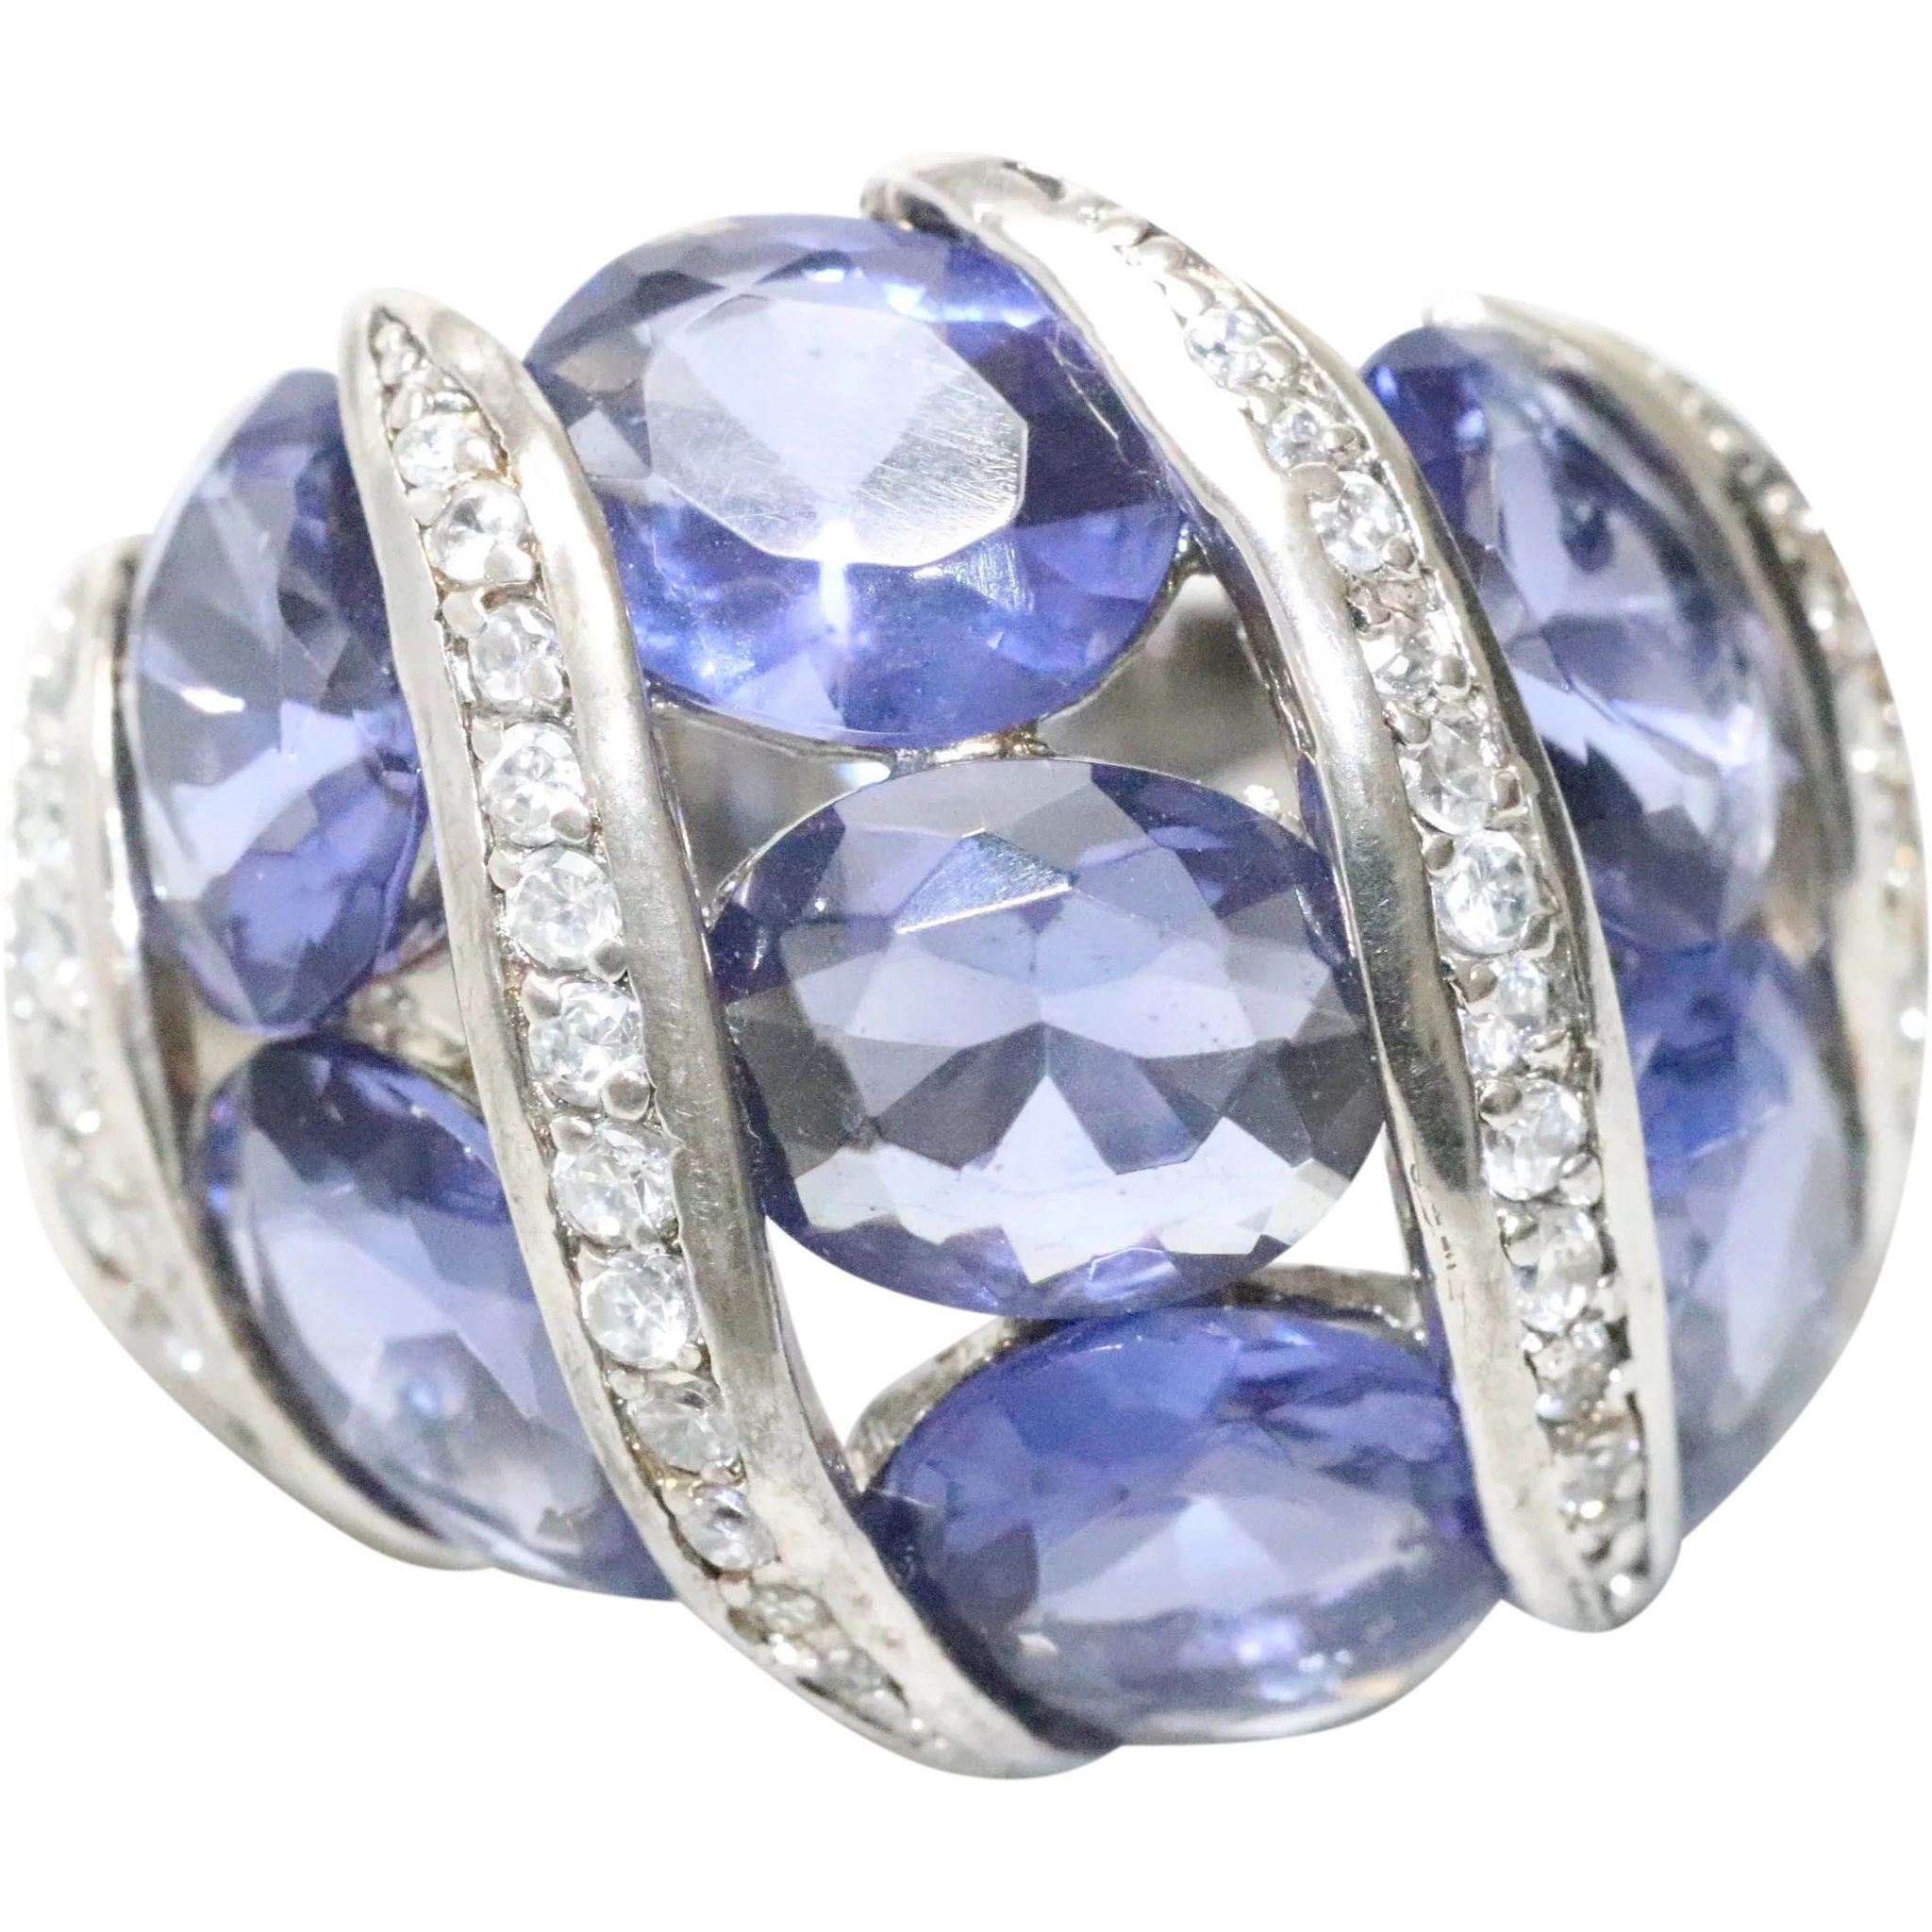 LoopClean Tanzanite 925 Silver Ring Tanzanite Silver Jewelry,Gift For Her,Tanzanite Solitaire Ring Tanzanite Oval Shaped Cut Gemstone Ring